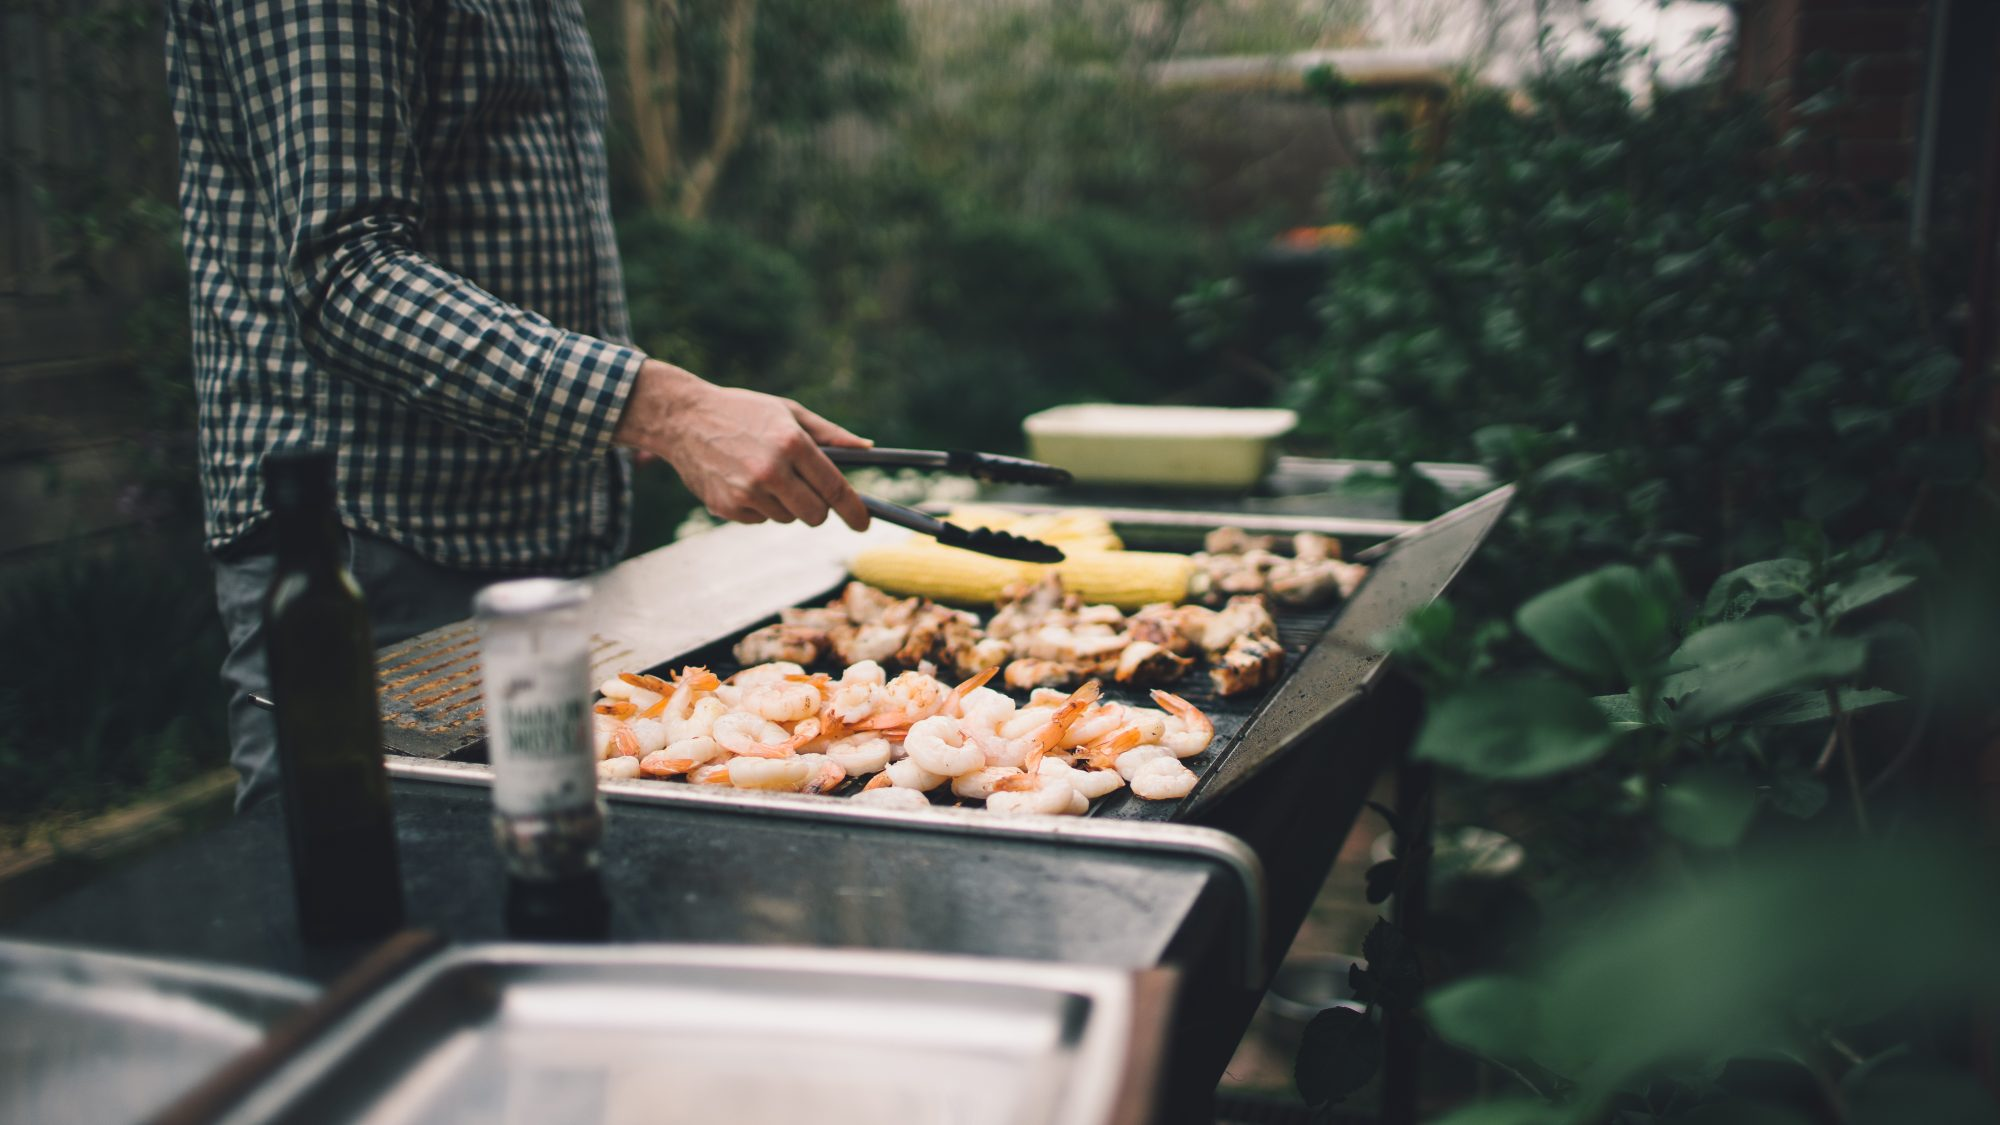 4 Ways to Make Grilling Healthier This Summer